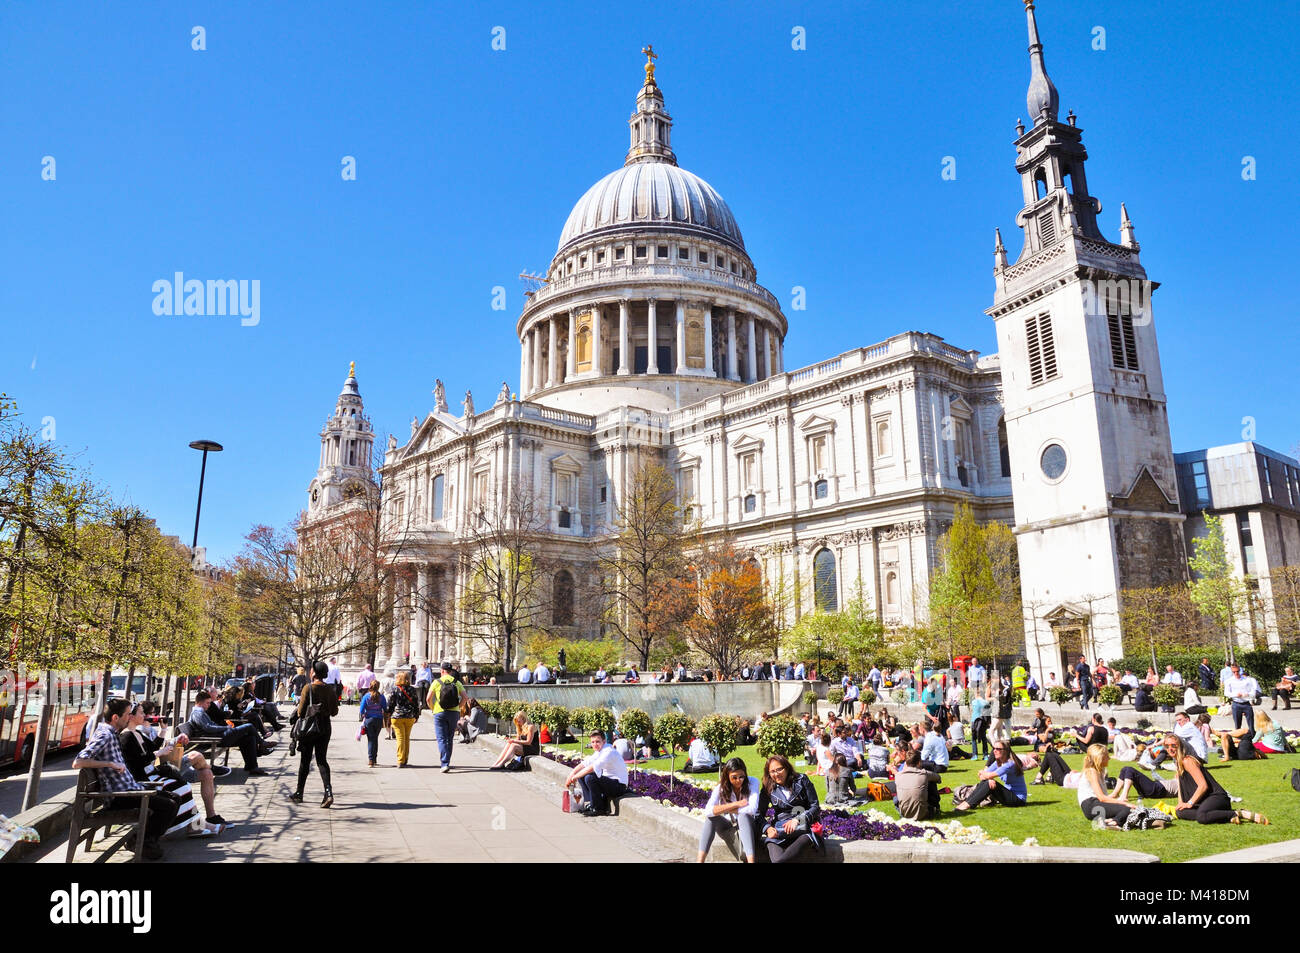 St Paul's Cathedral and Festival Gardens, London, England, UK - Stock Image